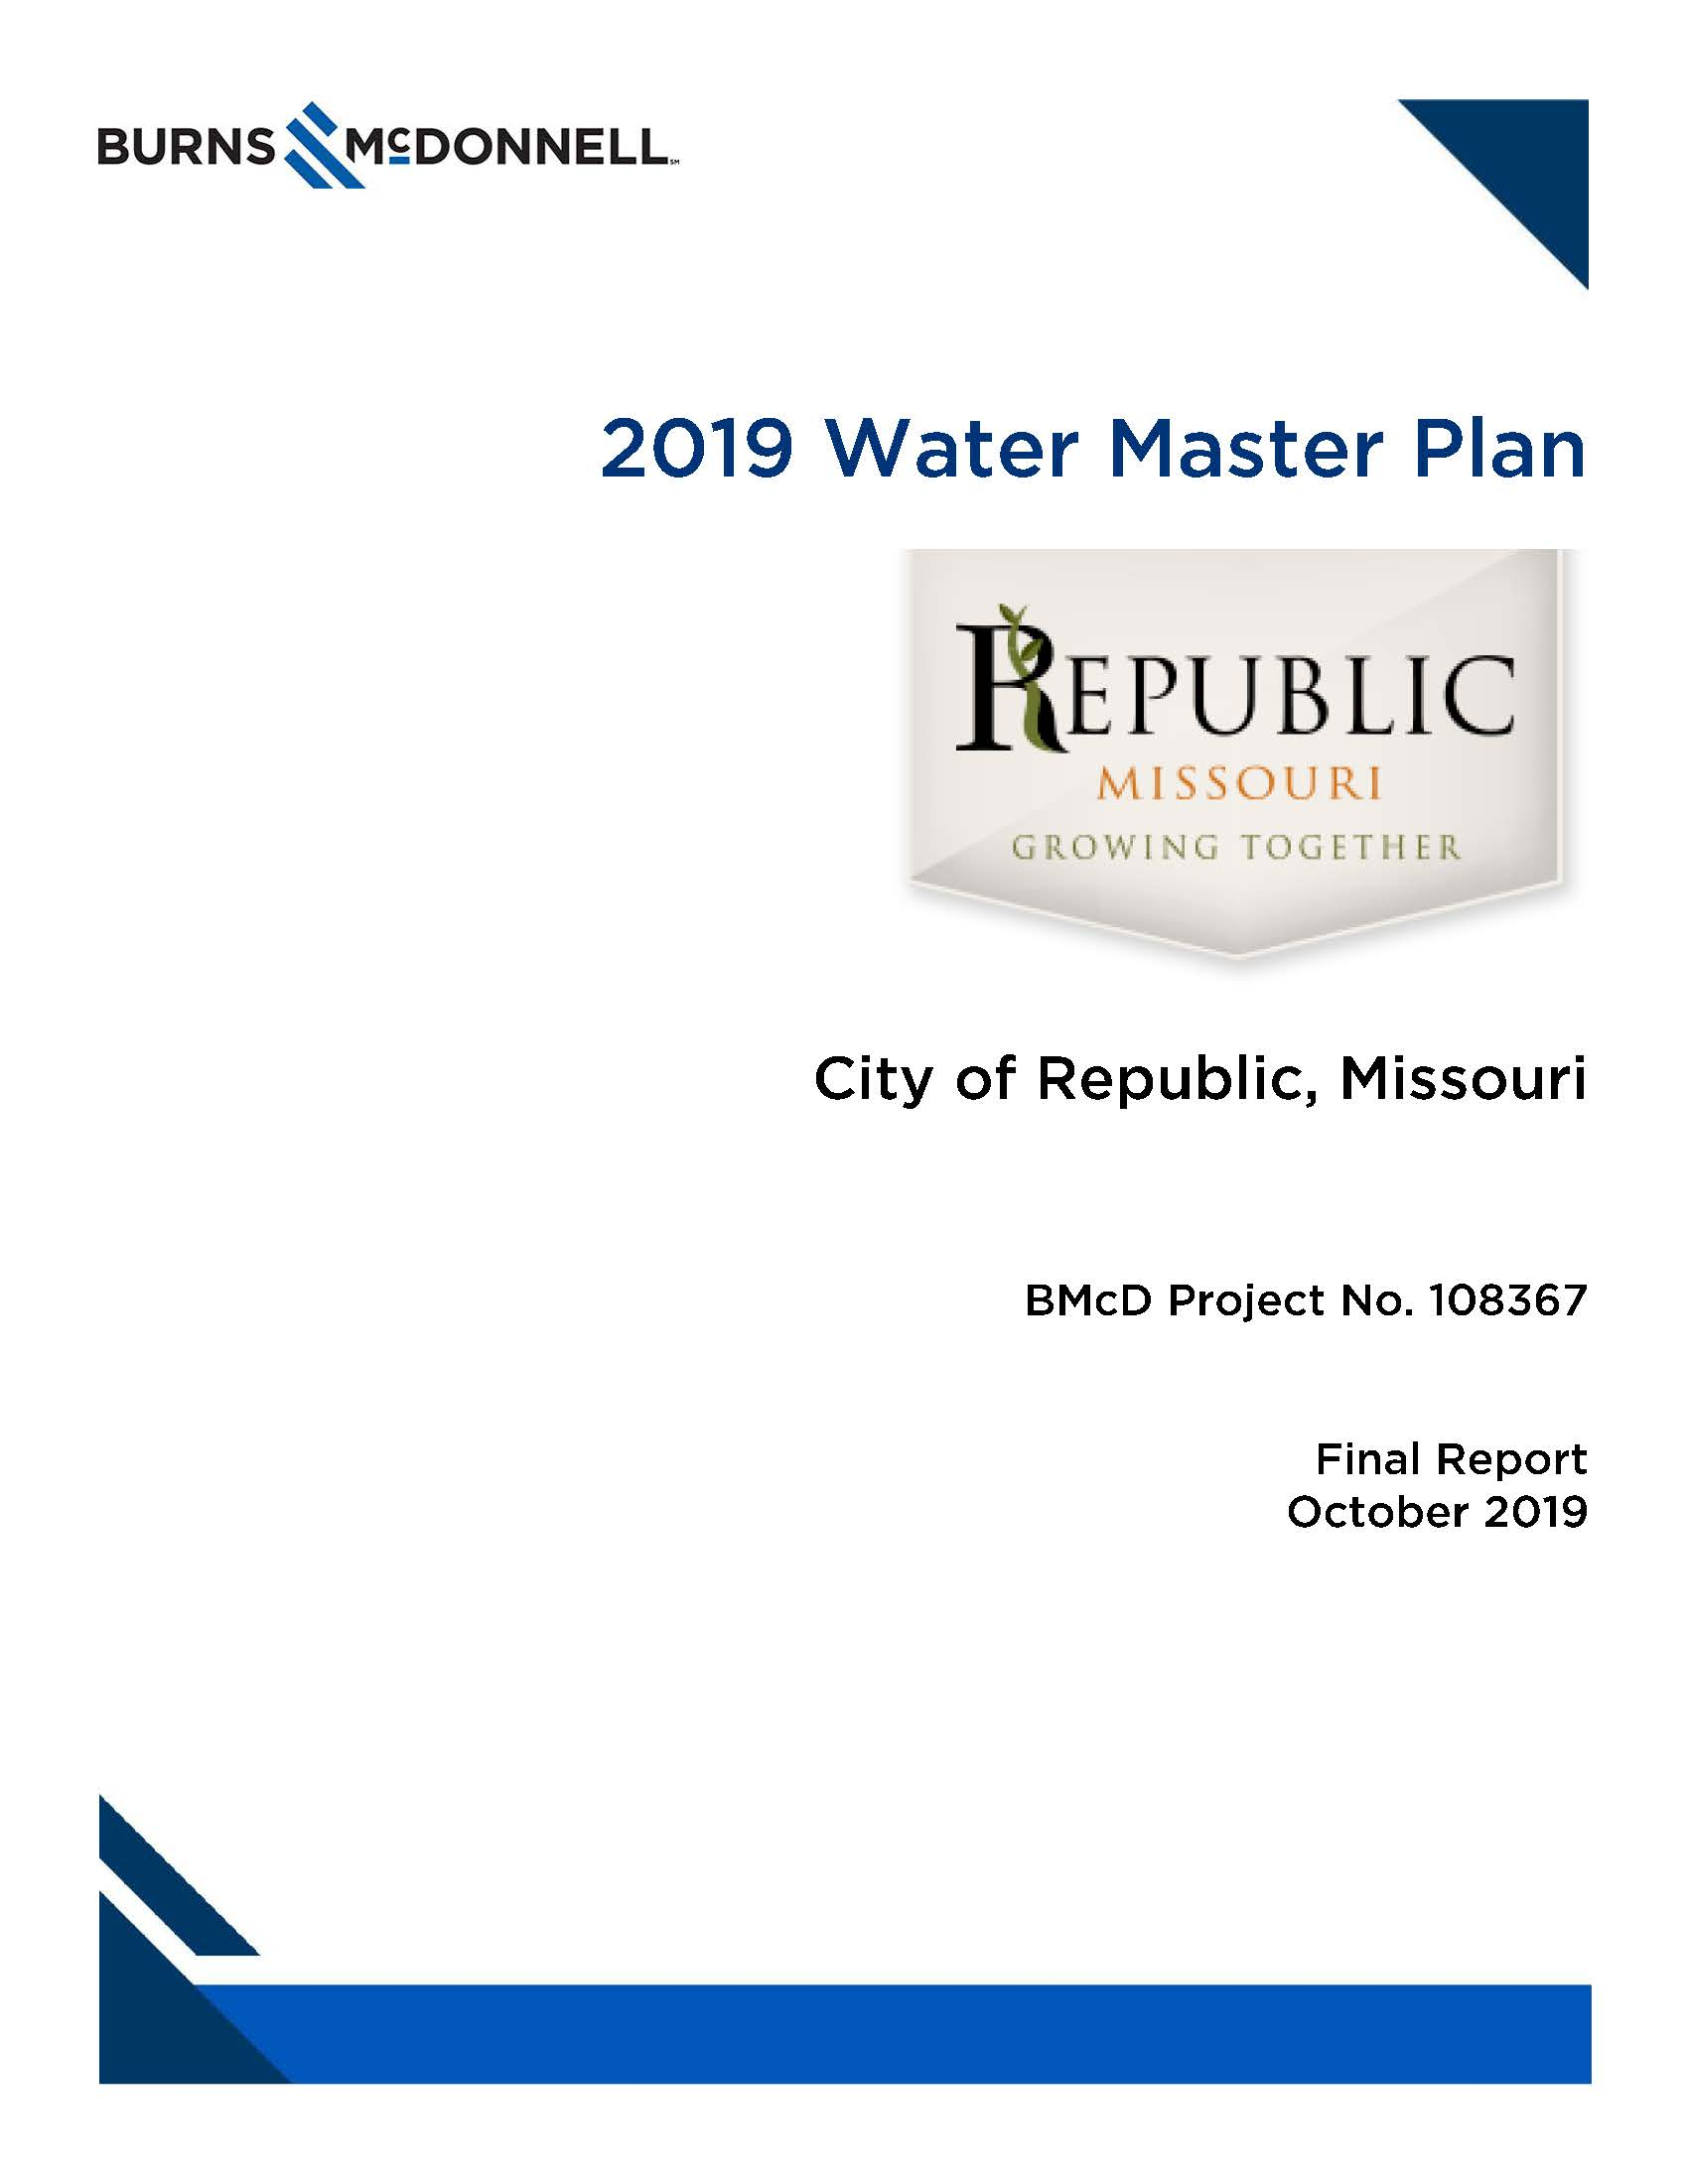 Republic MO 2019 Water Master Plan Opens in new window